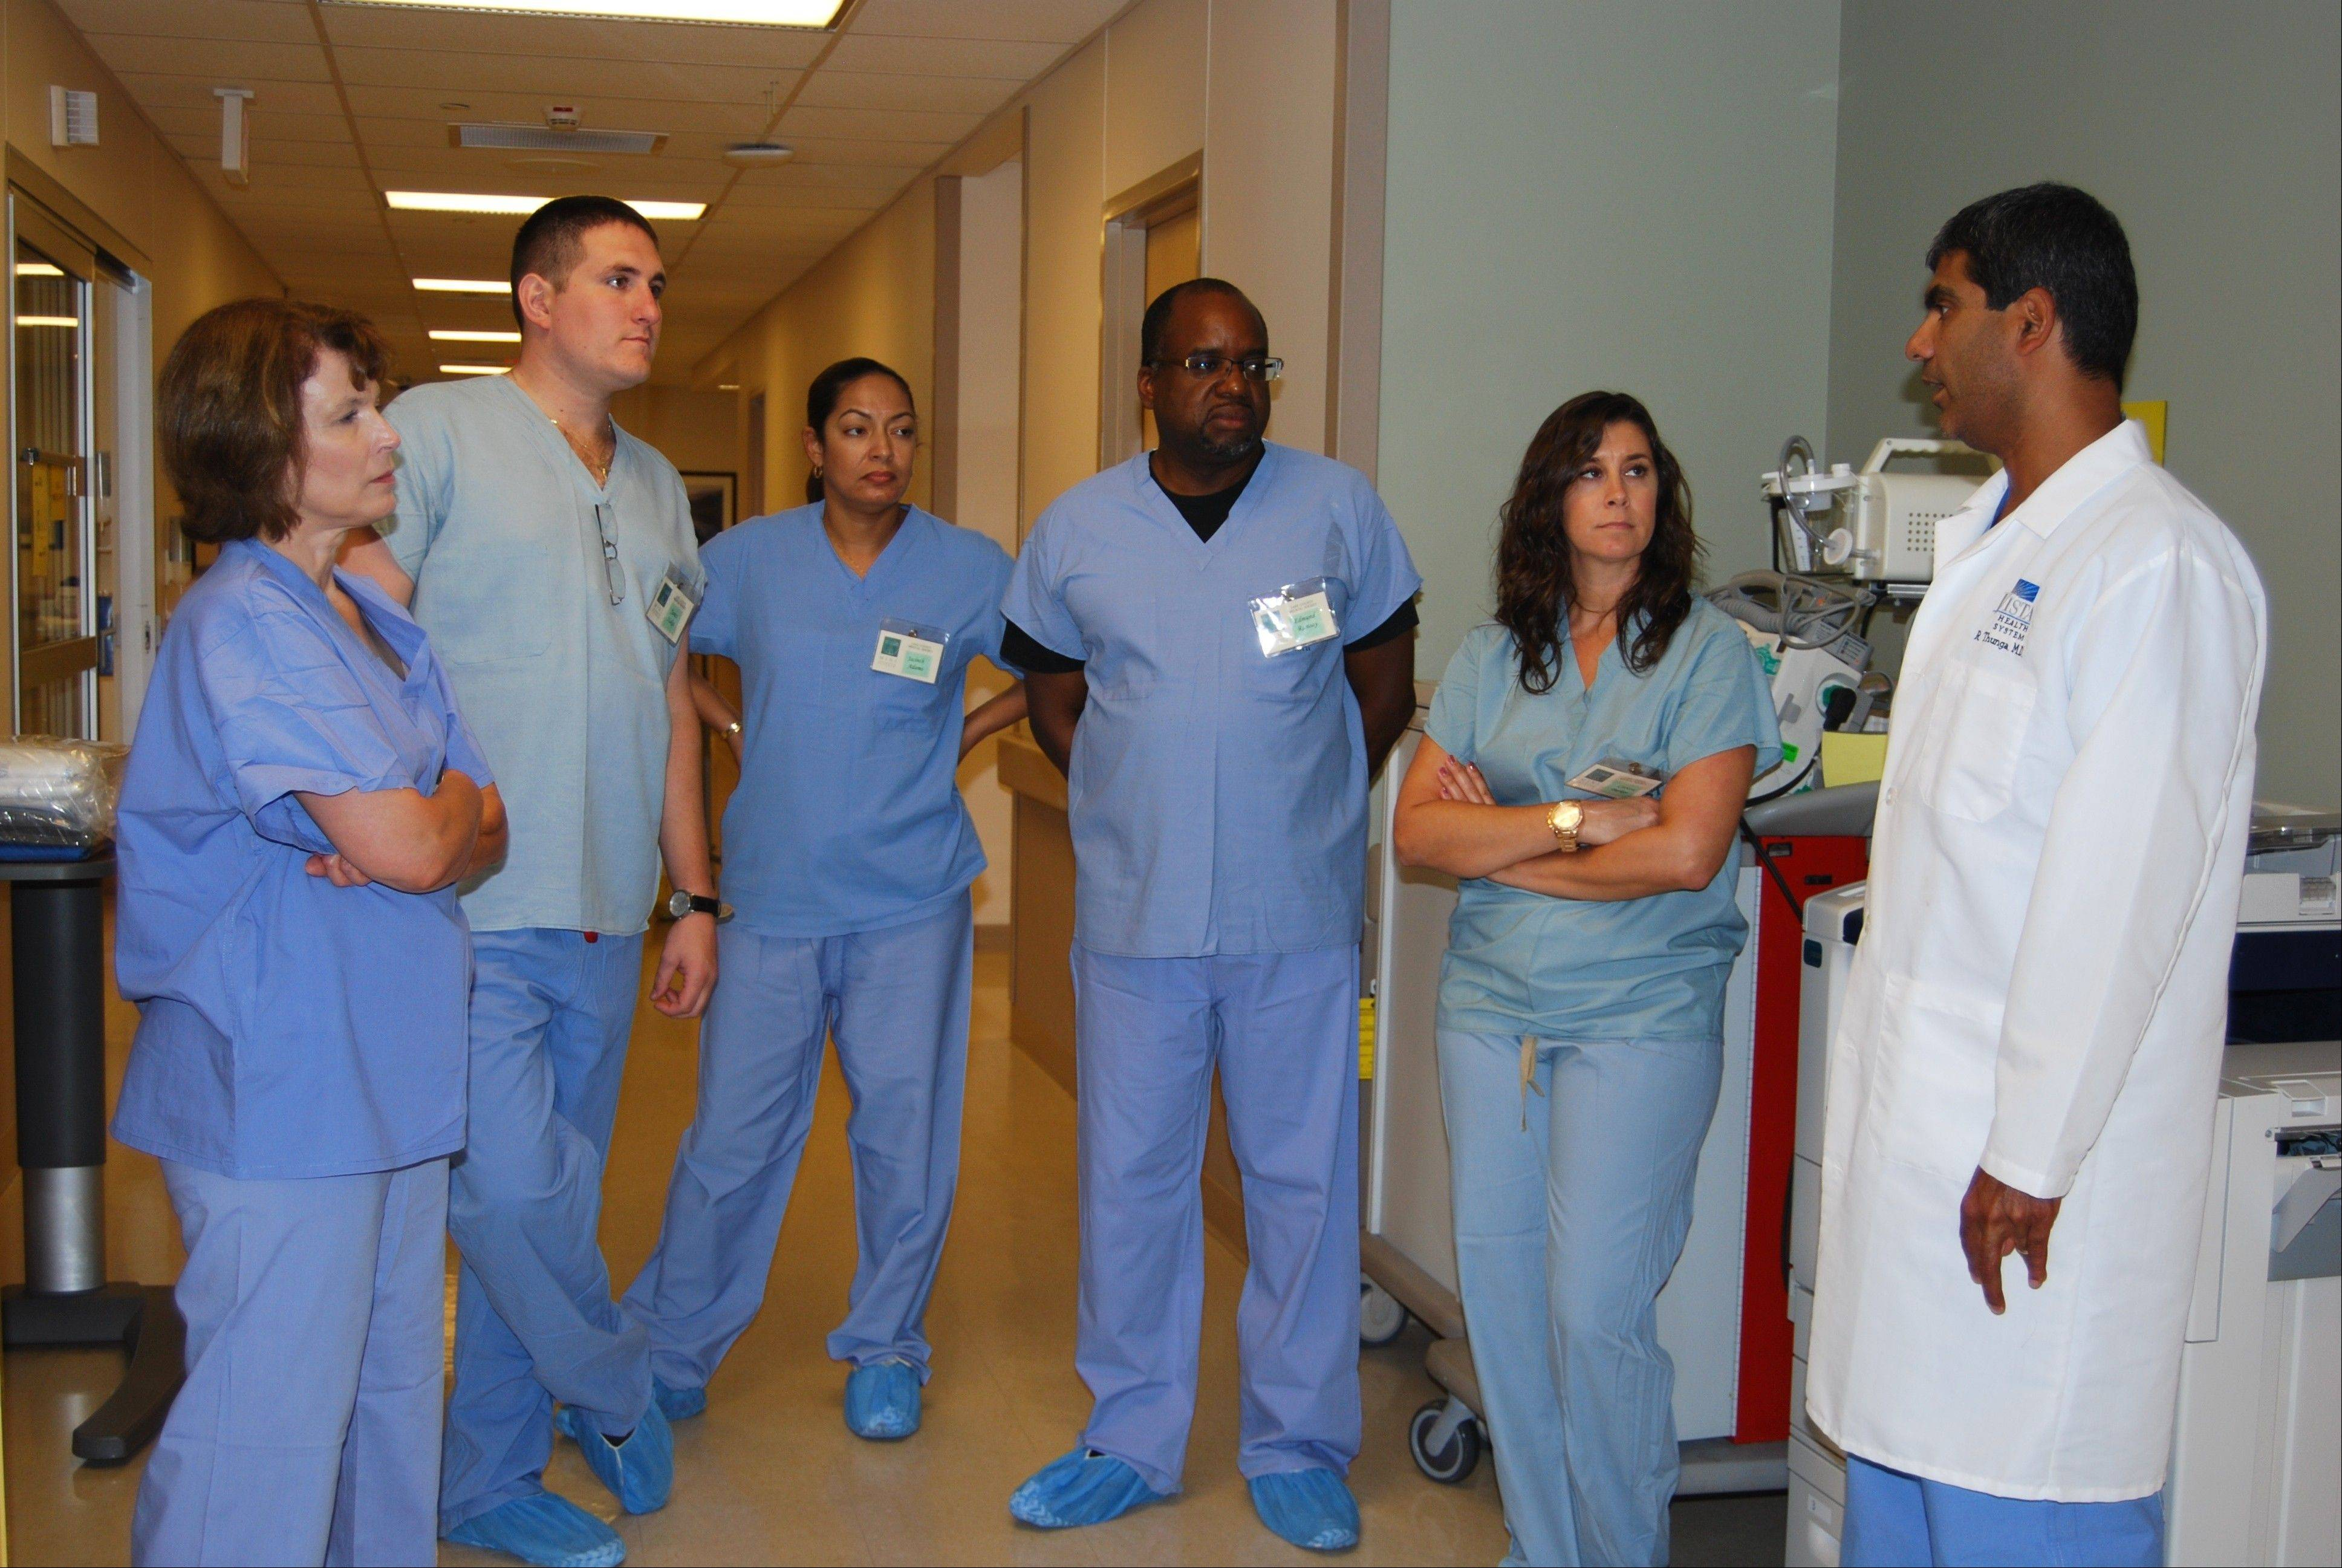 Participants of the 2013 Class of Mini Interns talk with Dr. Raghu Thunga in the ICU at Vista Medical Center East.